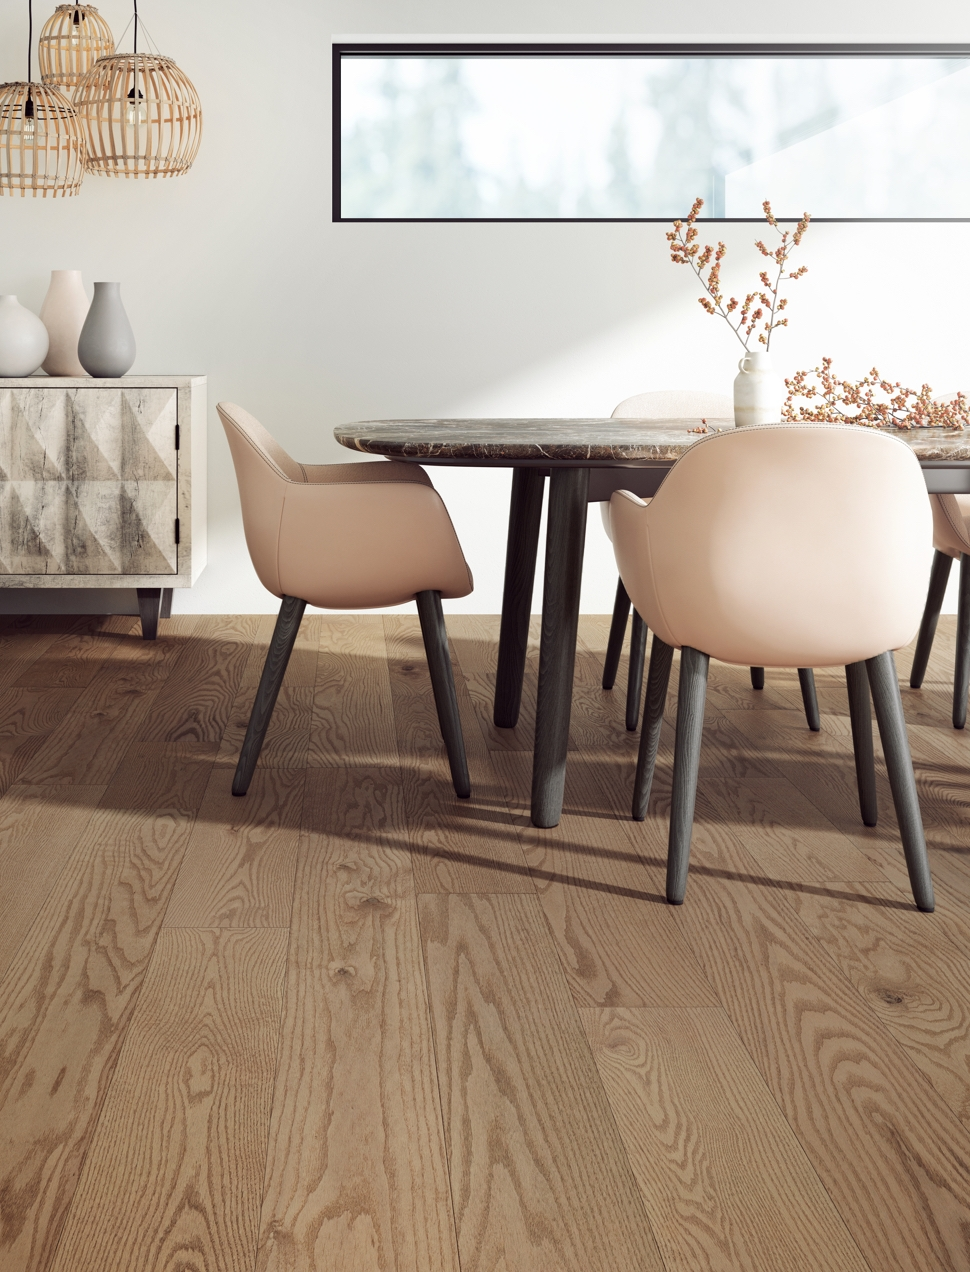 https://media.mercier-wood-flooring.com/webfolder_download/560c25cf036895ac75dc1c53e8f78350/intro/87004050a8ae1c80d4df0f633034e4f17714d303/intro.jpg